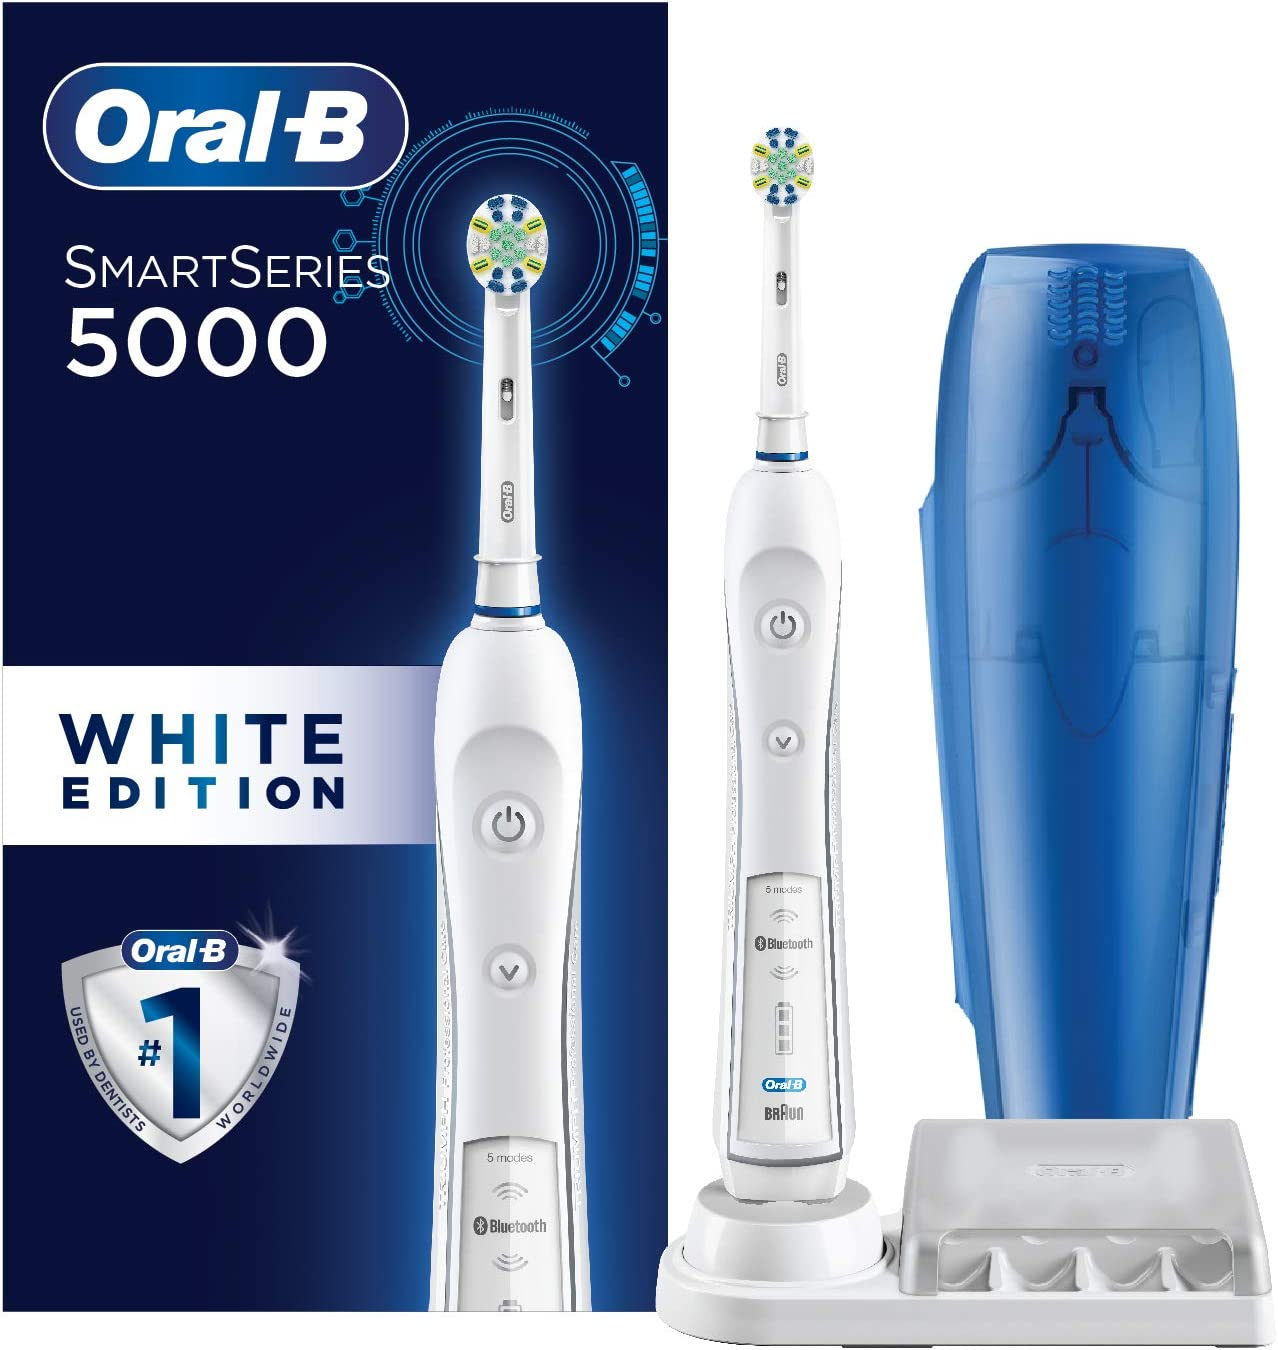 Oral B Oral B Pro 5000 Smartseries Power Rechargeable Electric Toothbrush With Bluetooth Connectivity Powered By Braun